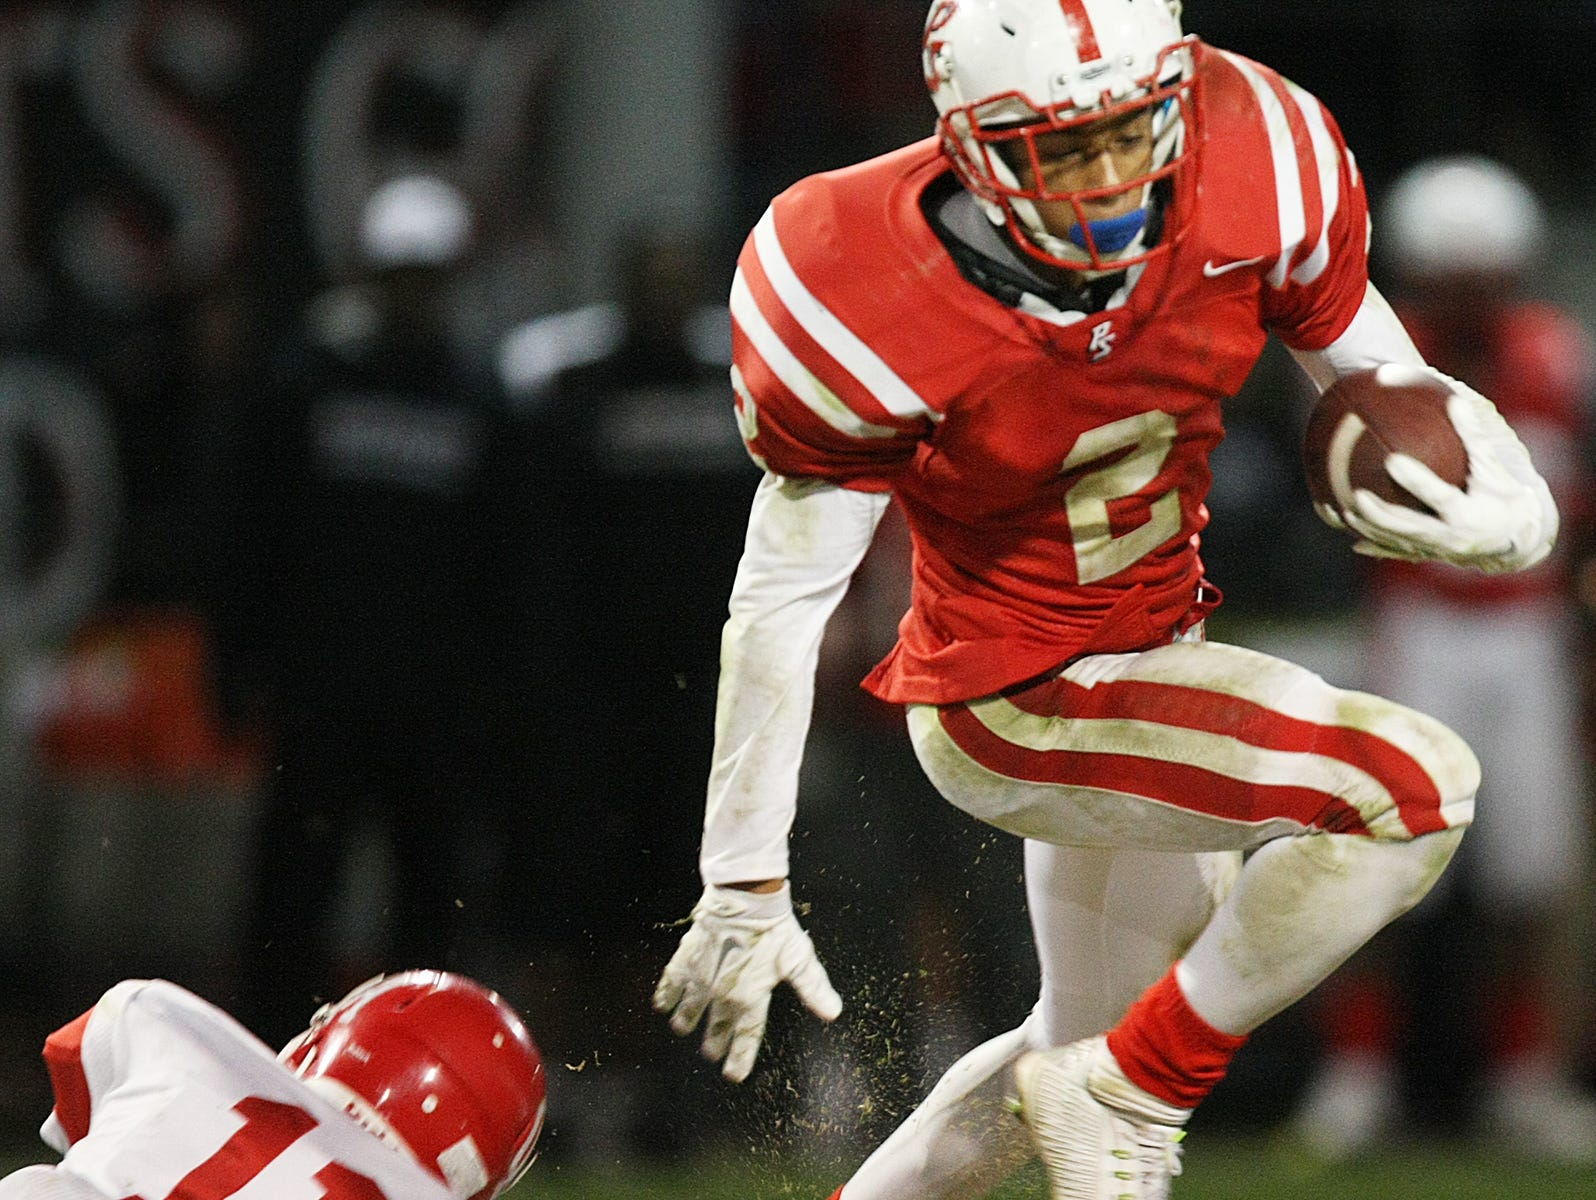 Tayler Hawkins high steps out of a tackle as Palm Springs plays Oak Hills in their CIF semifinal football game at Palm Springs High. The Indians won 27-23.